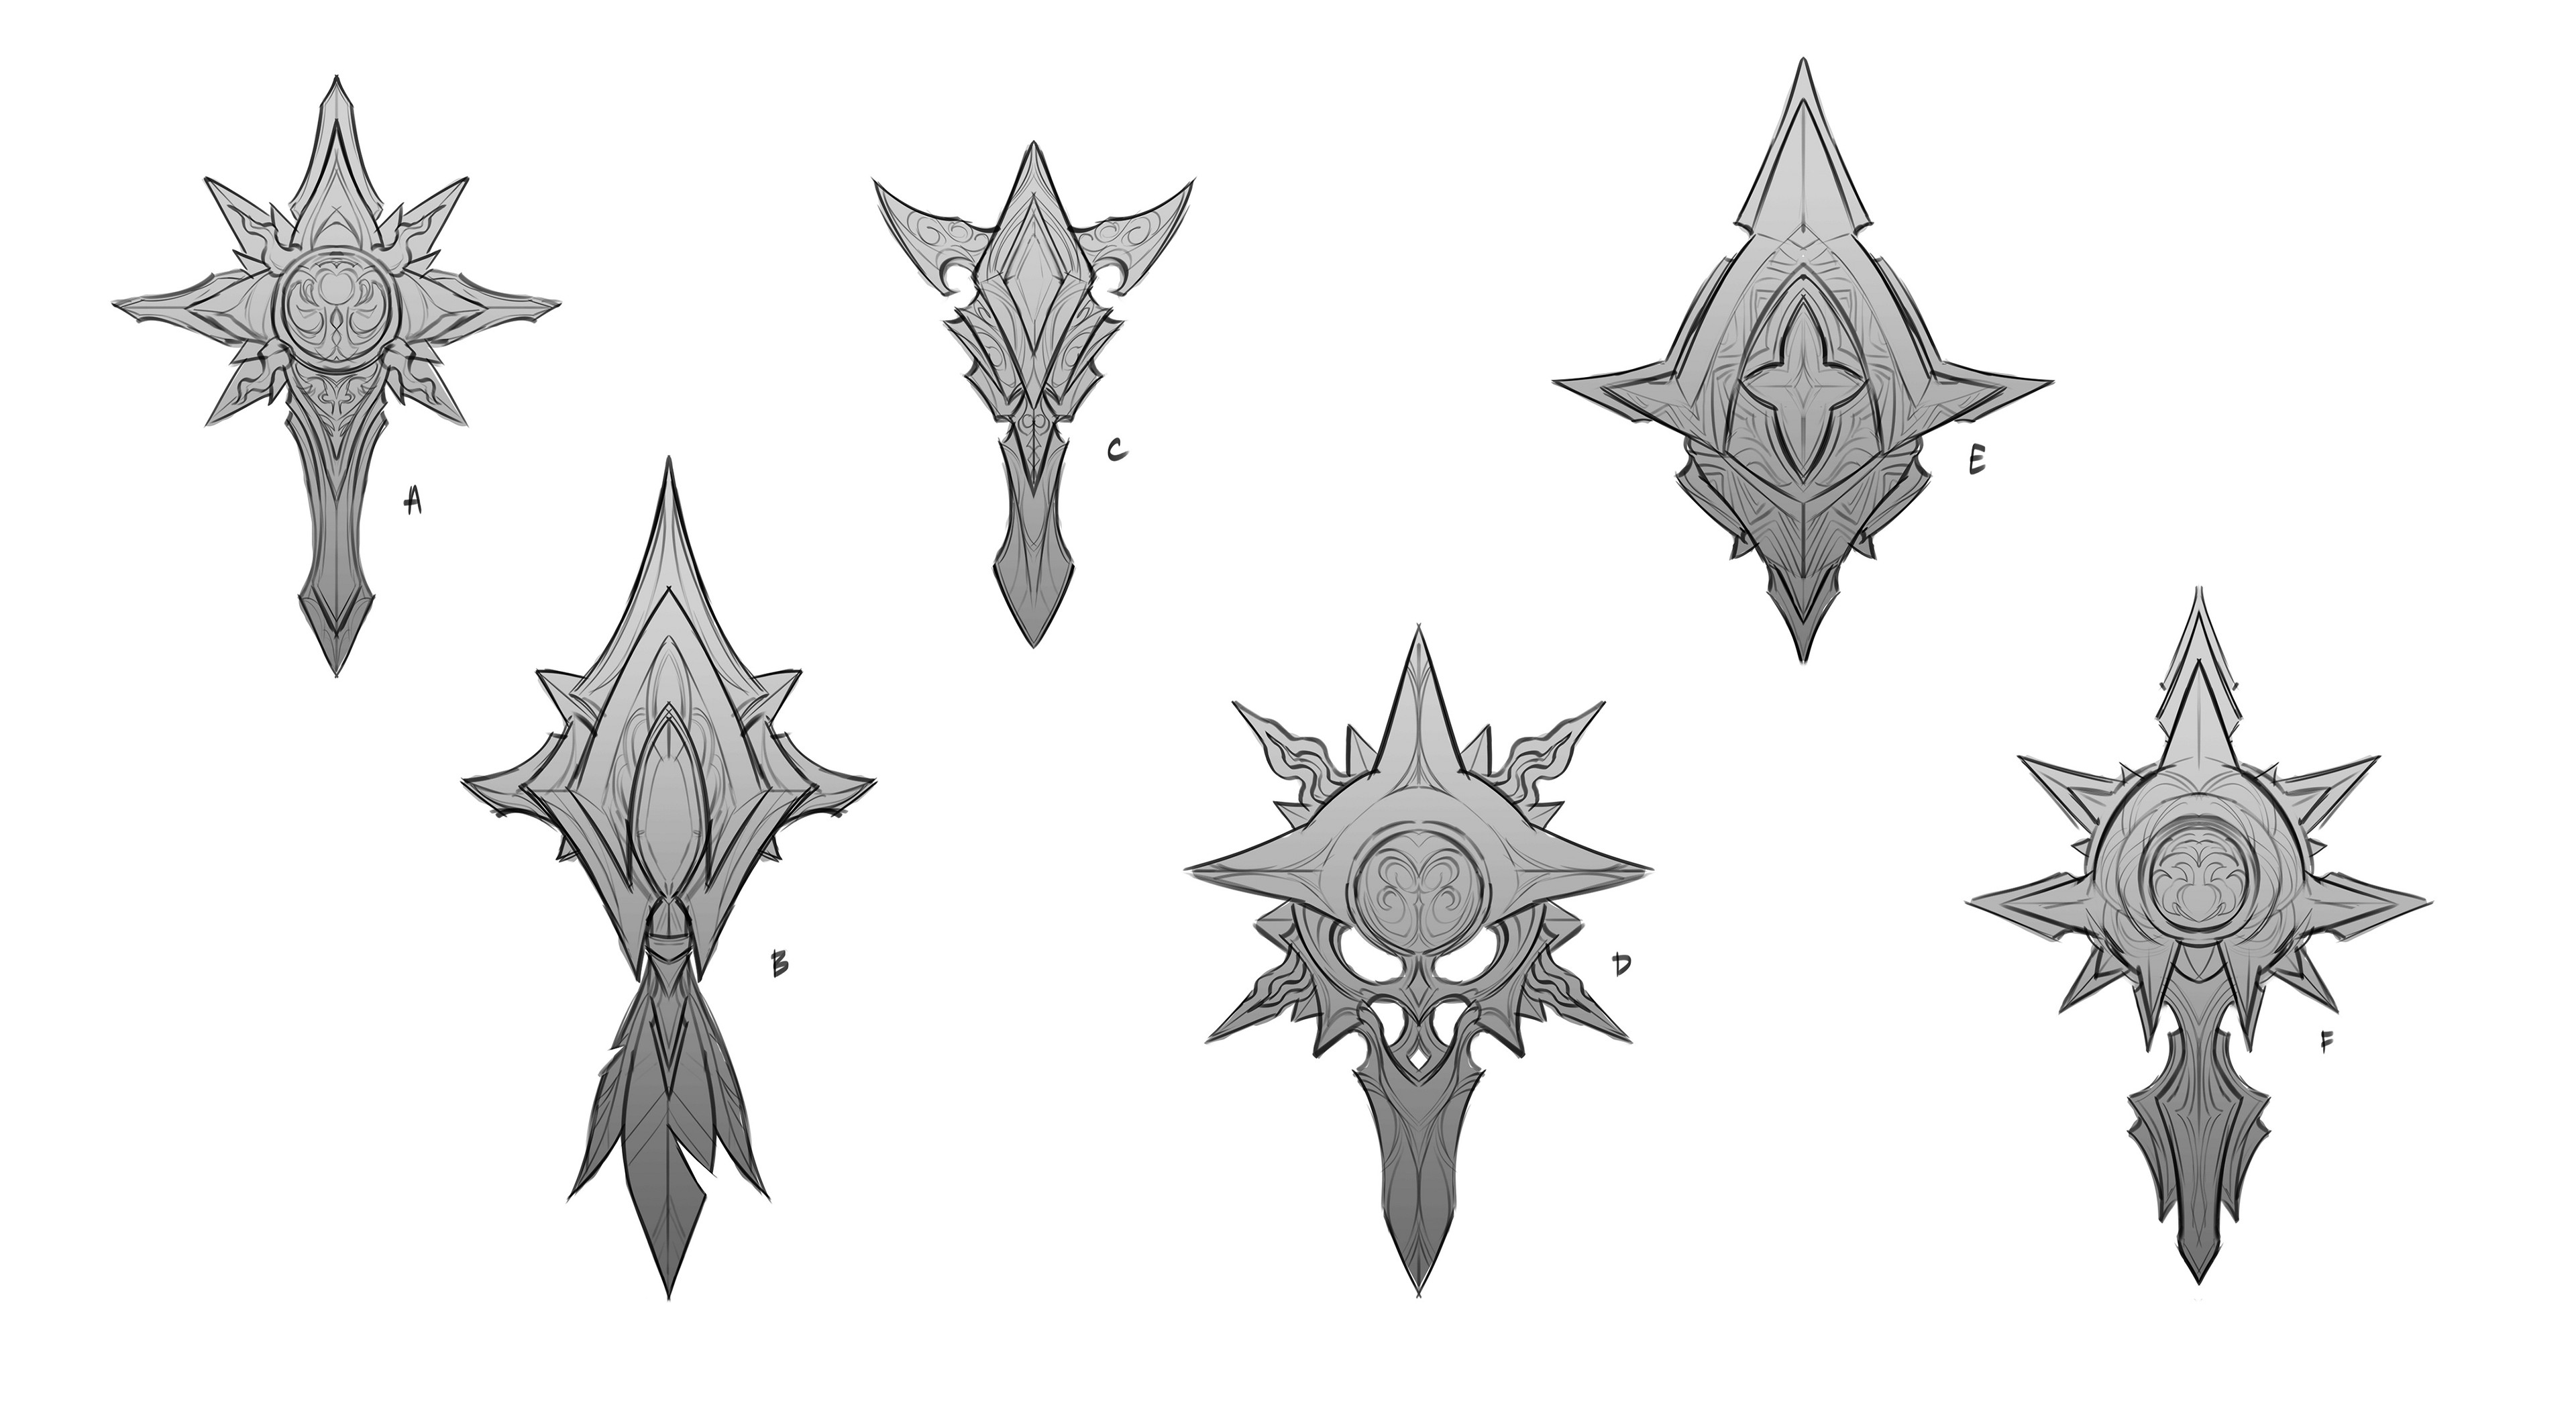 Detailed brooch explorations (probably didn't have to be so detailed I just wanted to have fun!)